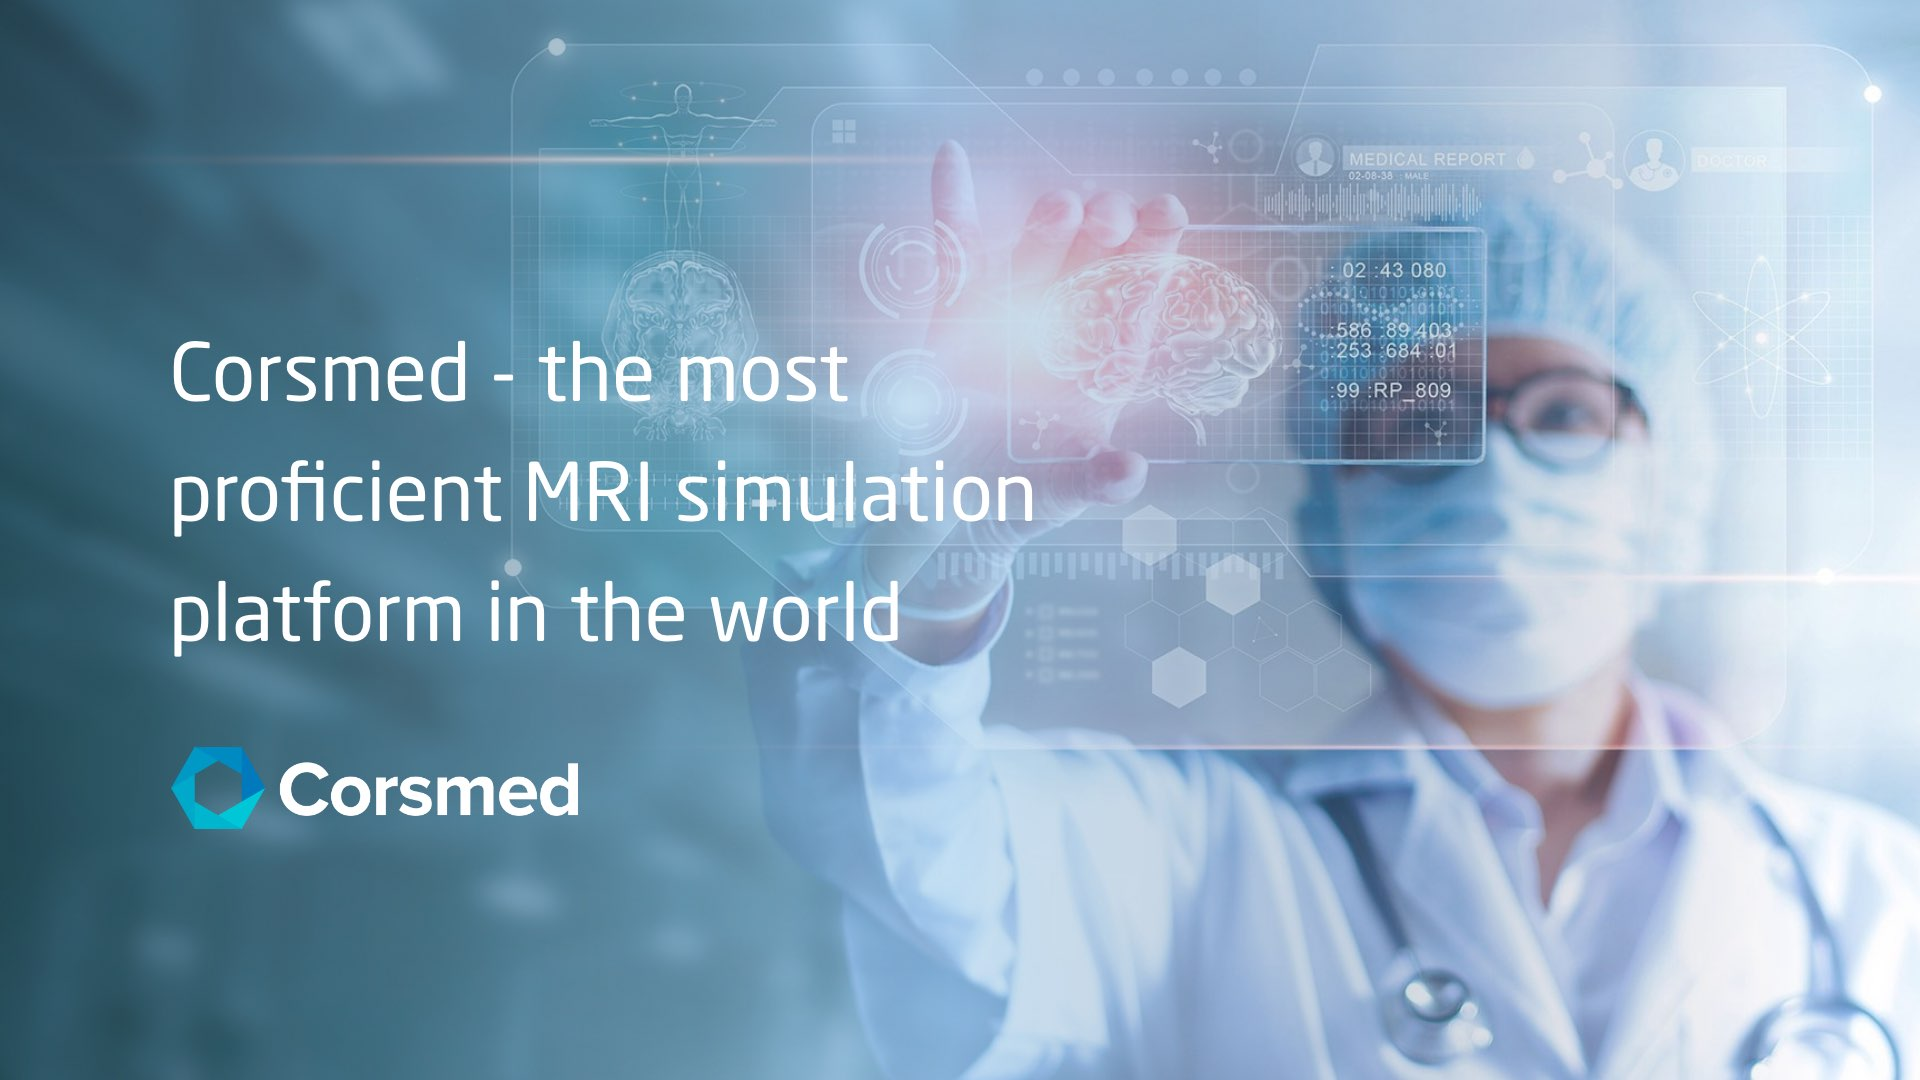 Corsmed - the most proficient MRI simulation platform in the world